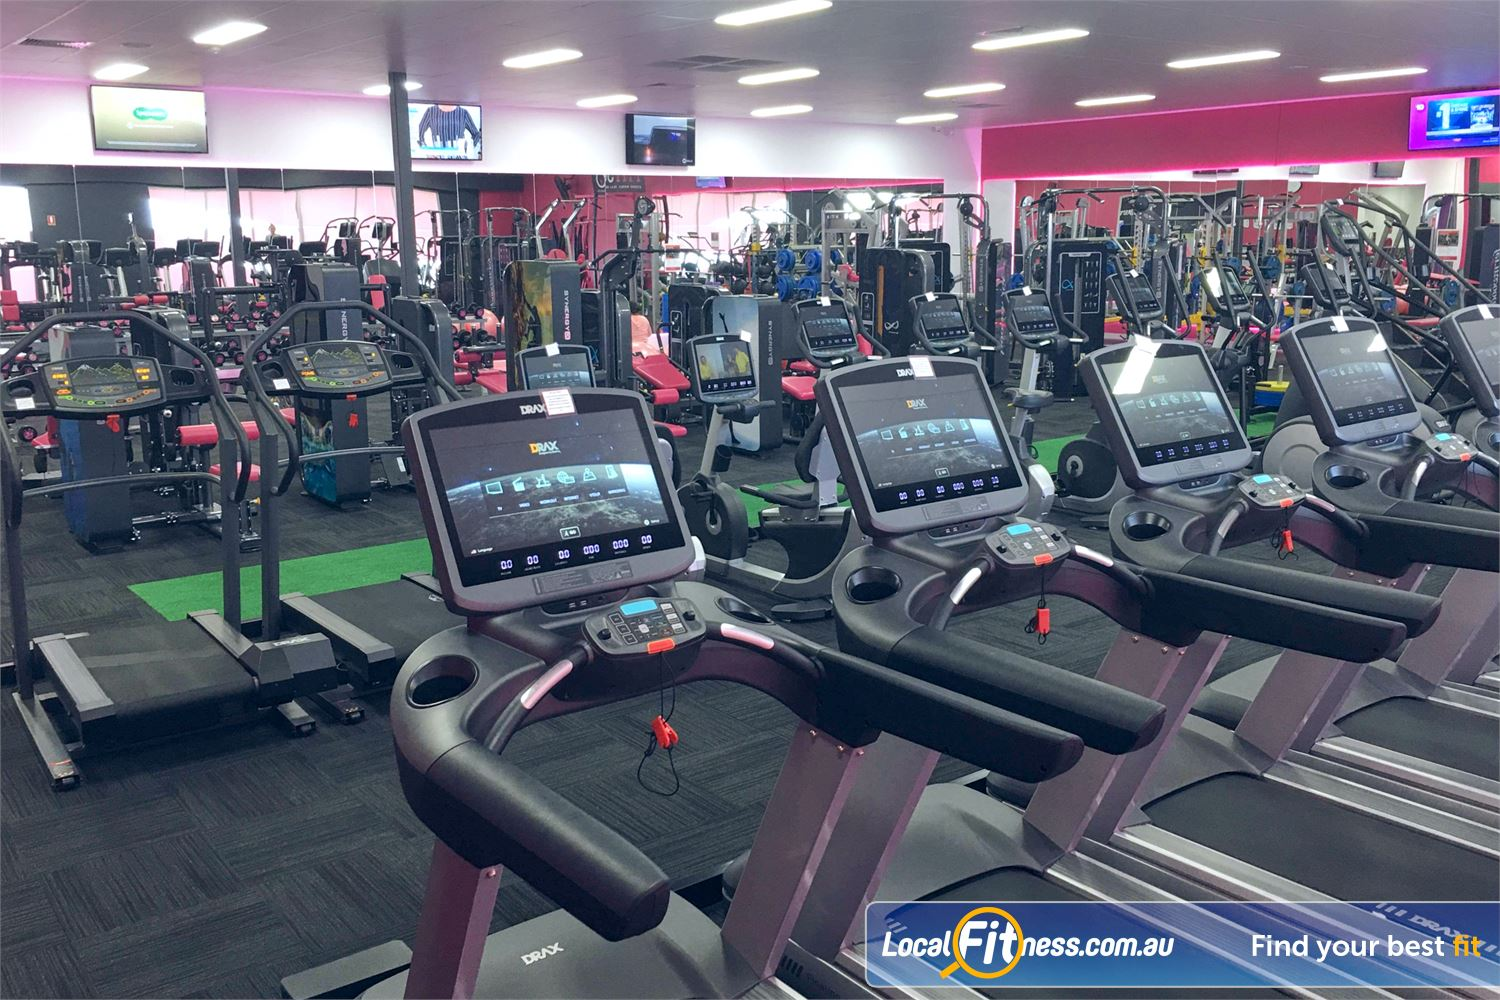 Fernwood Fitness Robina Our cardio includes state of the art personal entertainment screens.